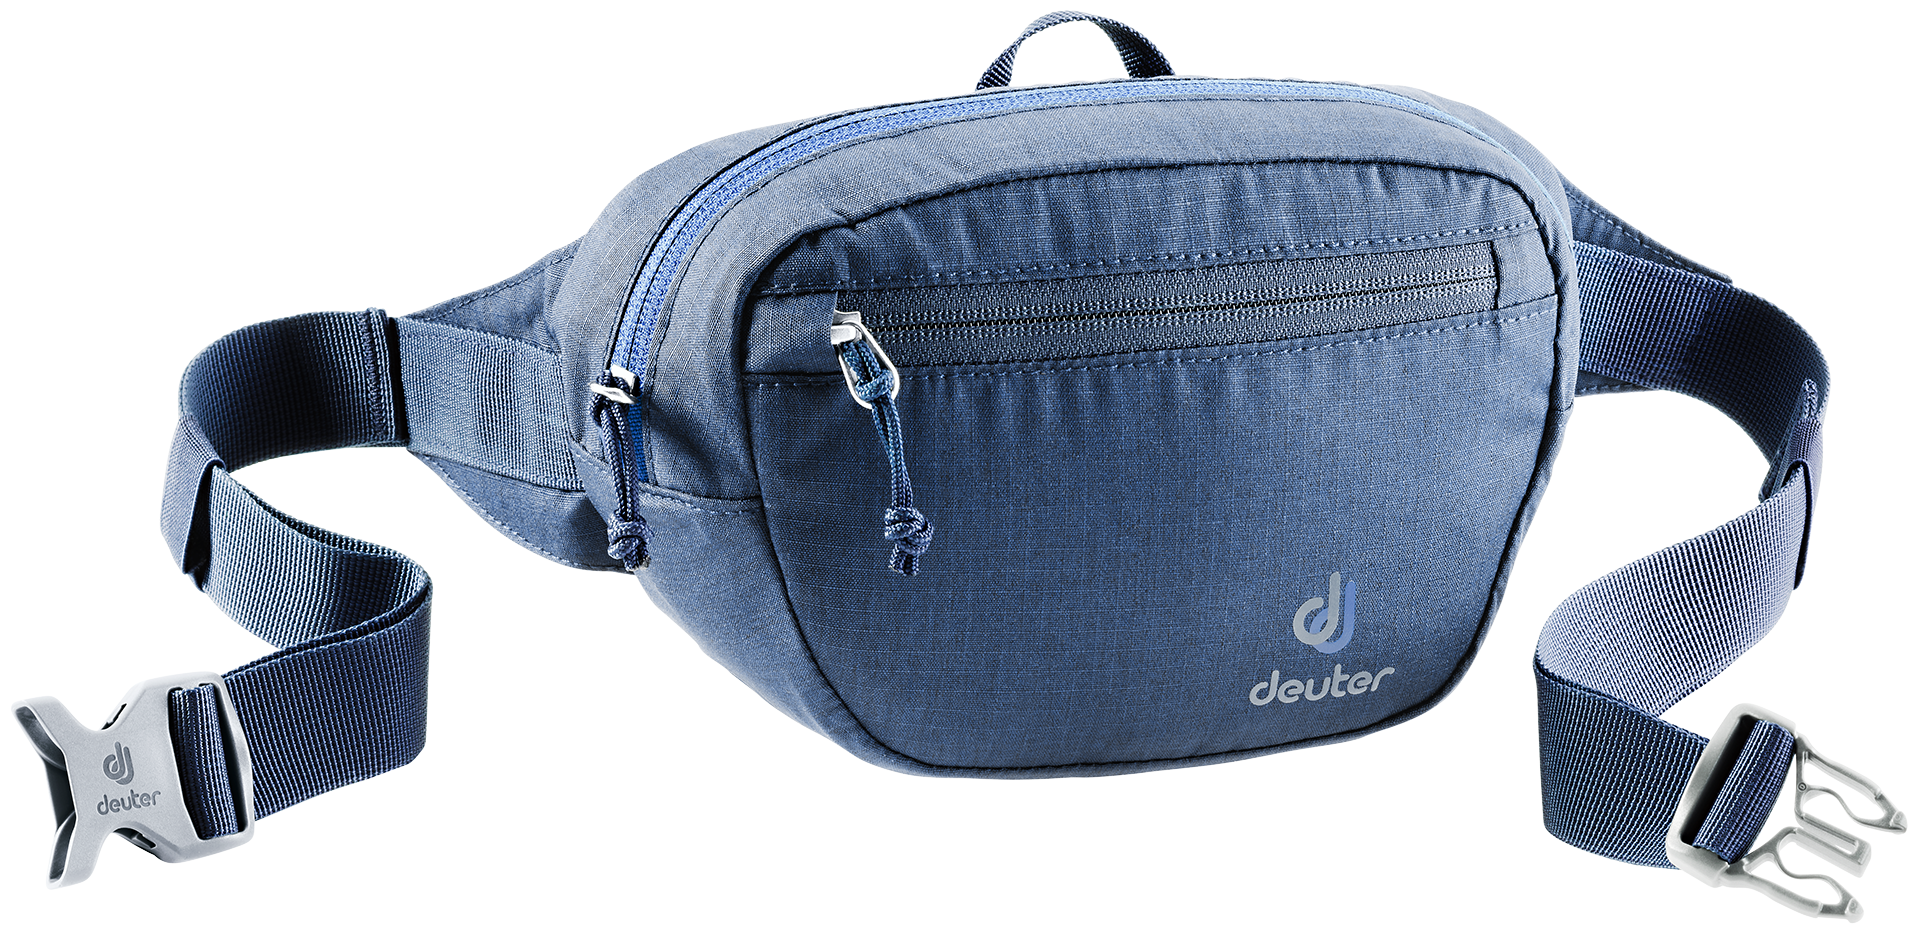 Deuter Organiser belt